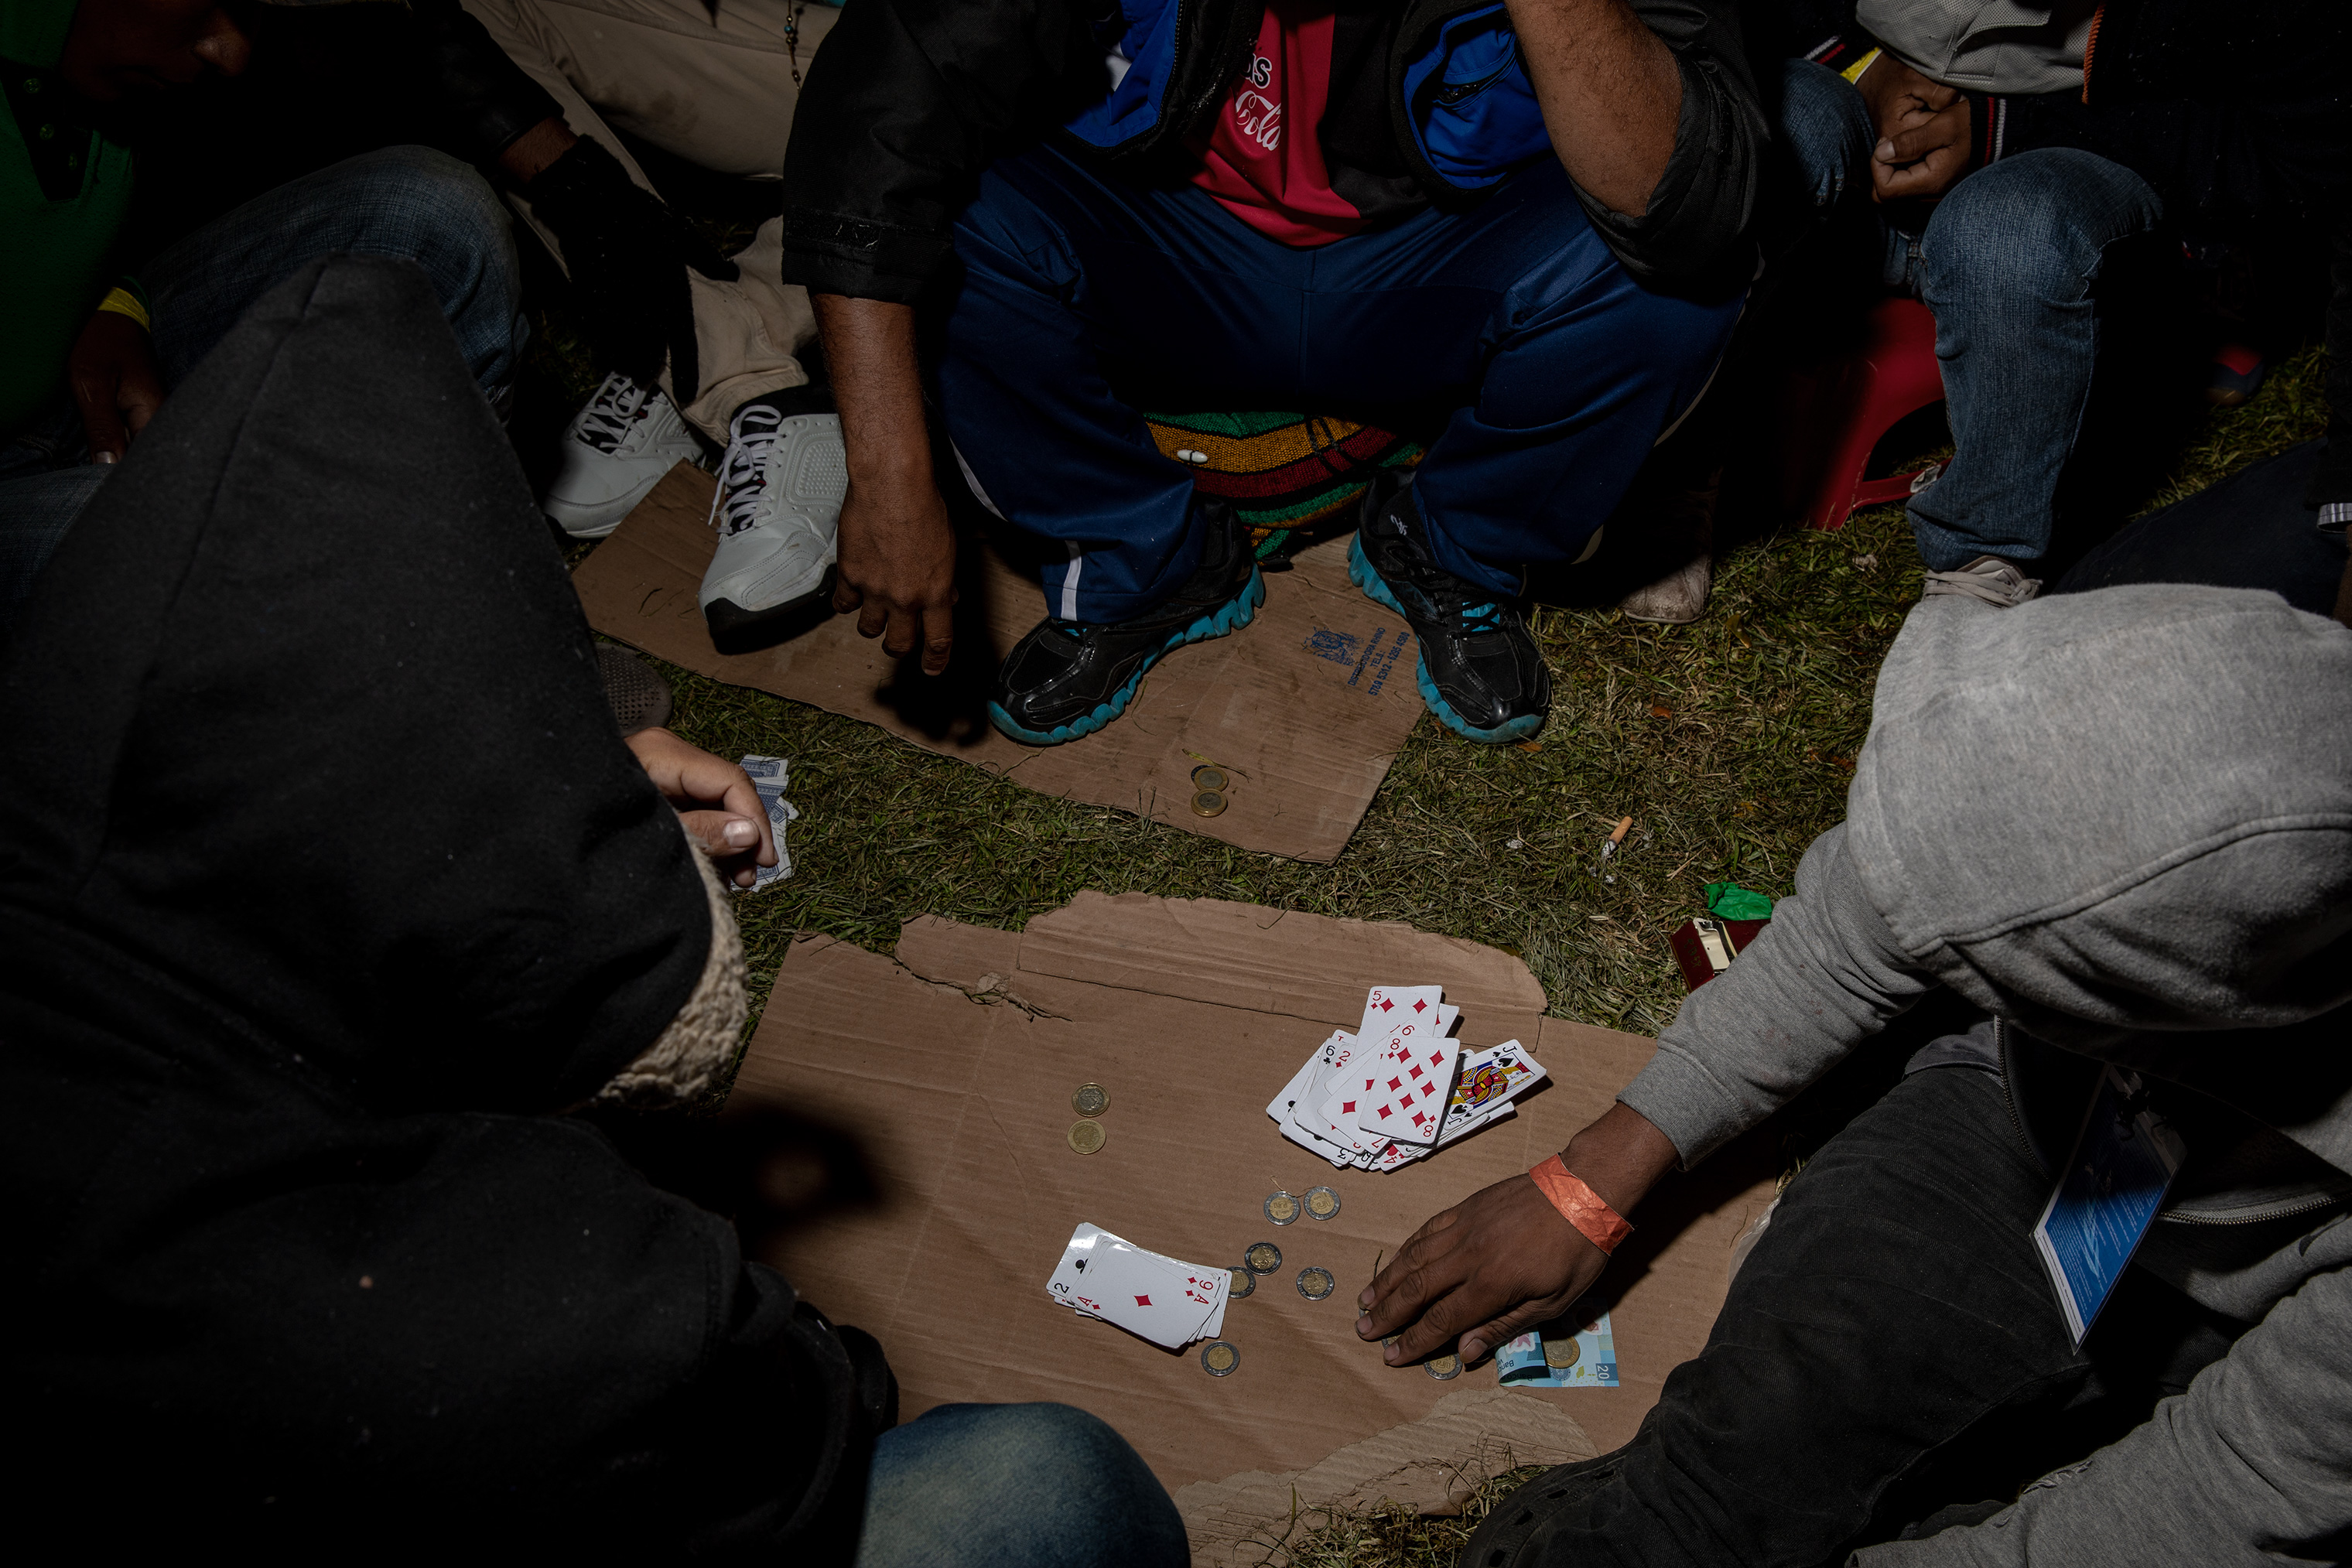 To pass the time at the stadium, migrants play cards, Nov. 9, 2018.